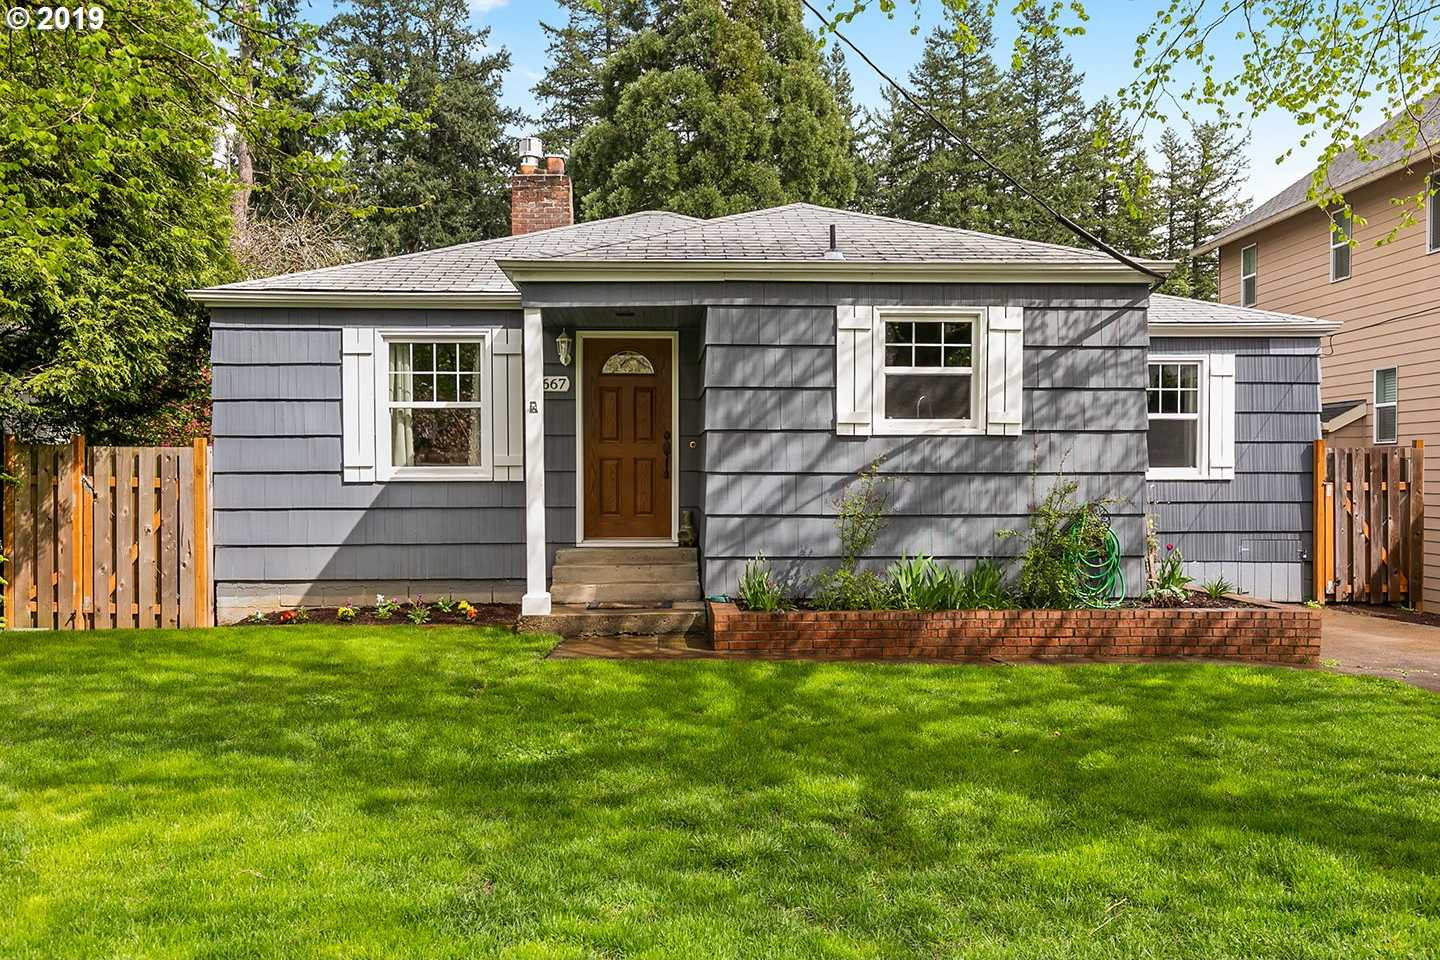 $425,000 - 4Br/3Ba -  for Sale in West Linn